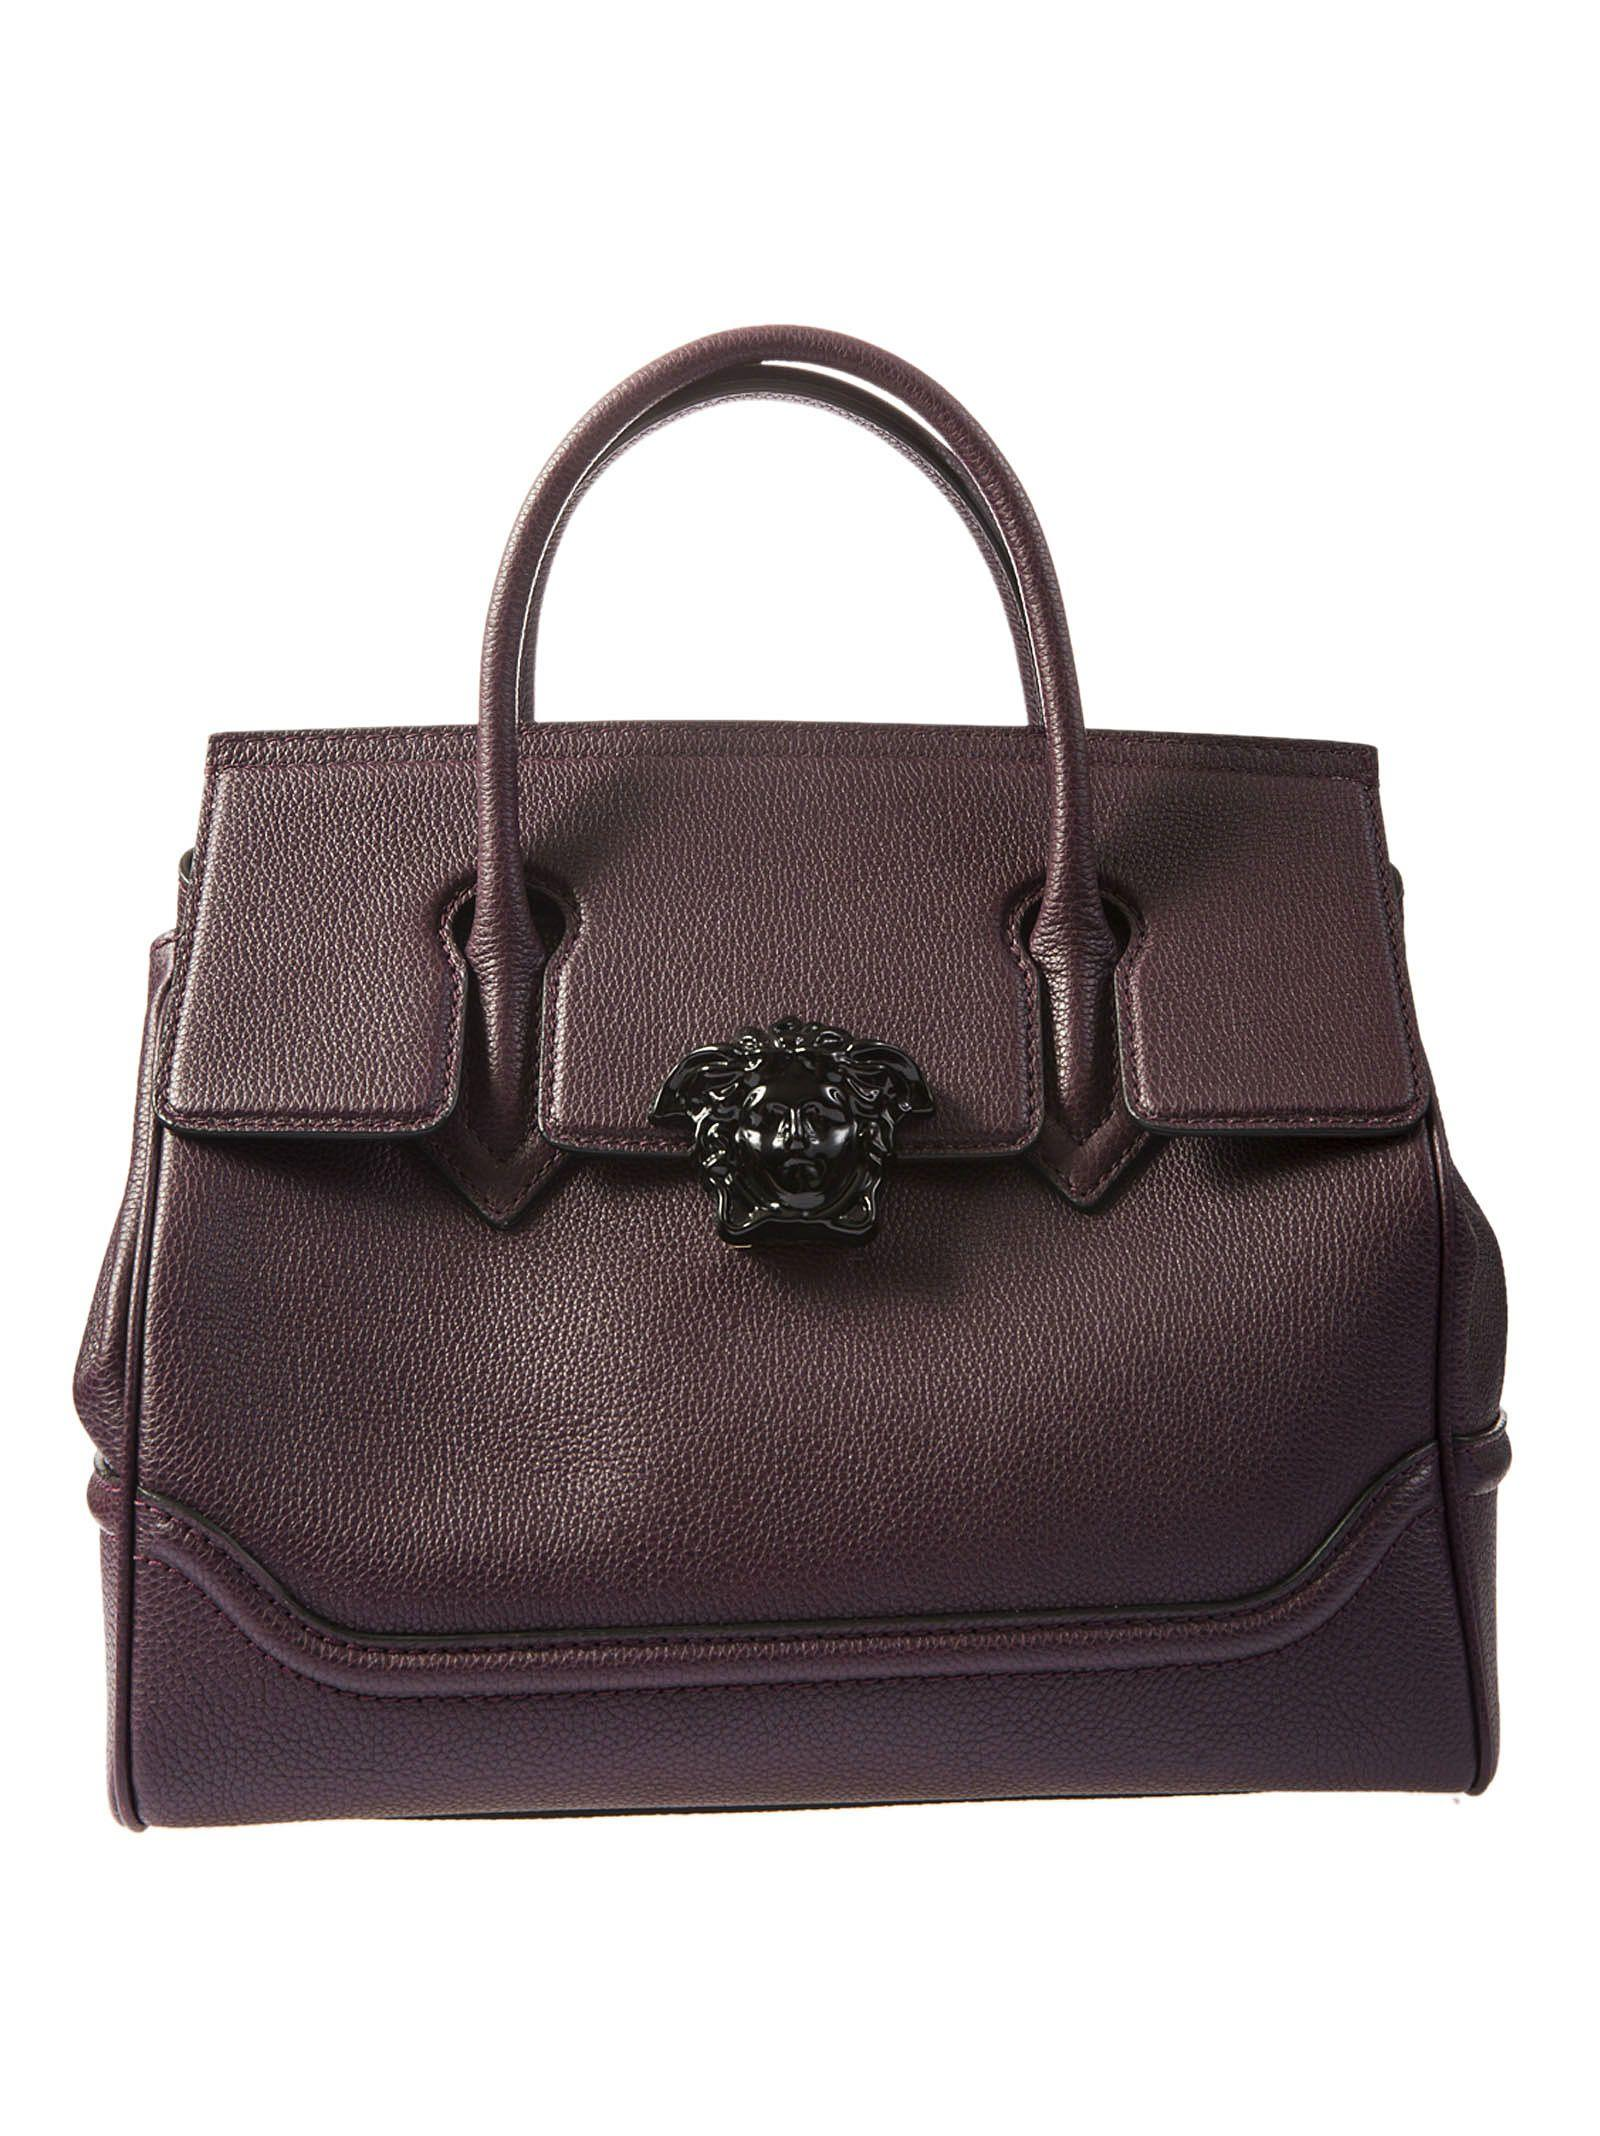 7af7644db762 Versace Coulisse Palazzo Empire Bag In Burgundy